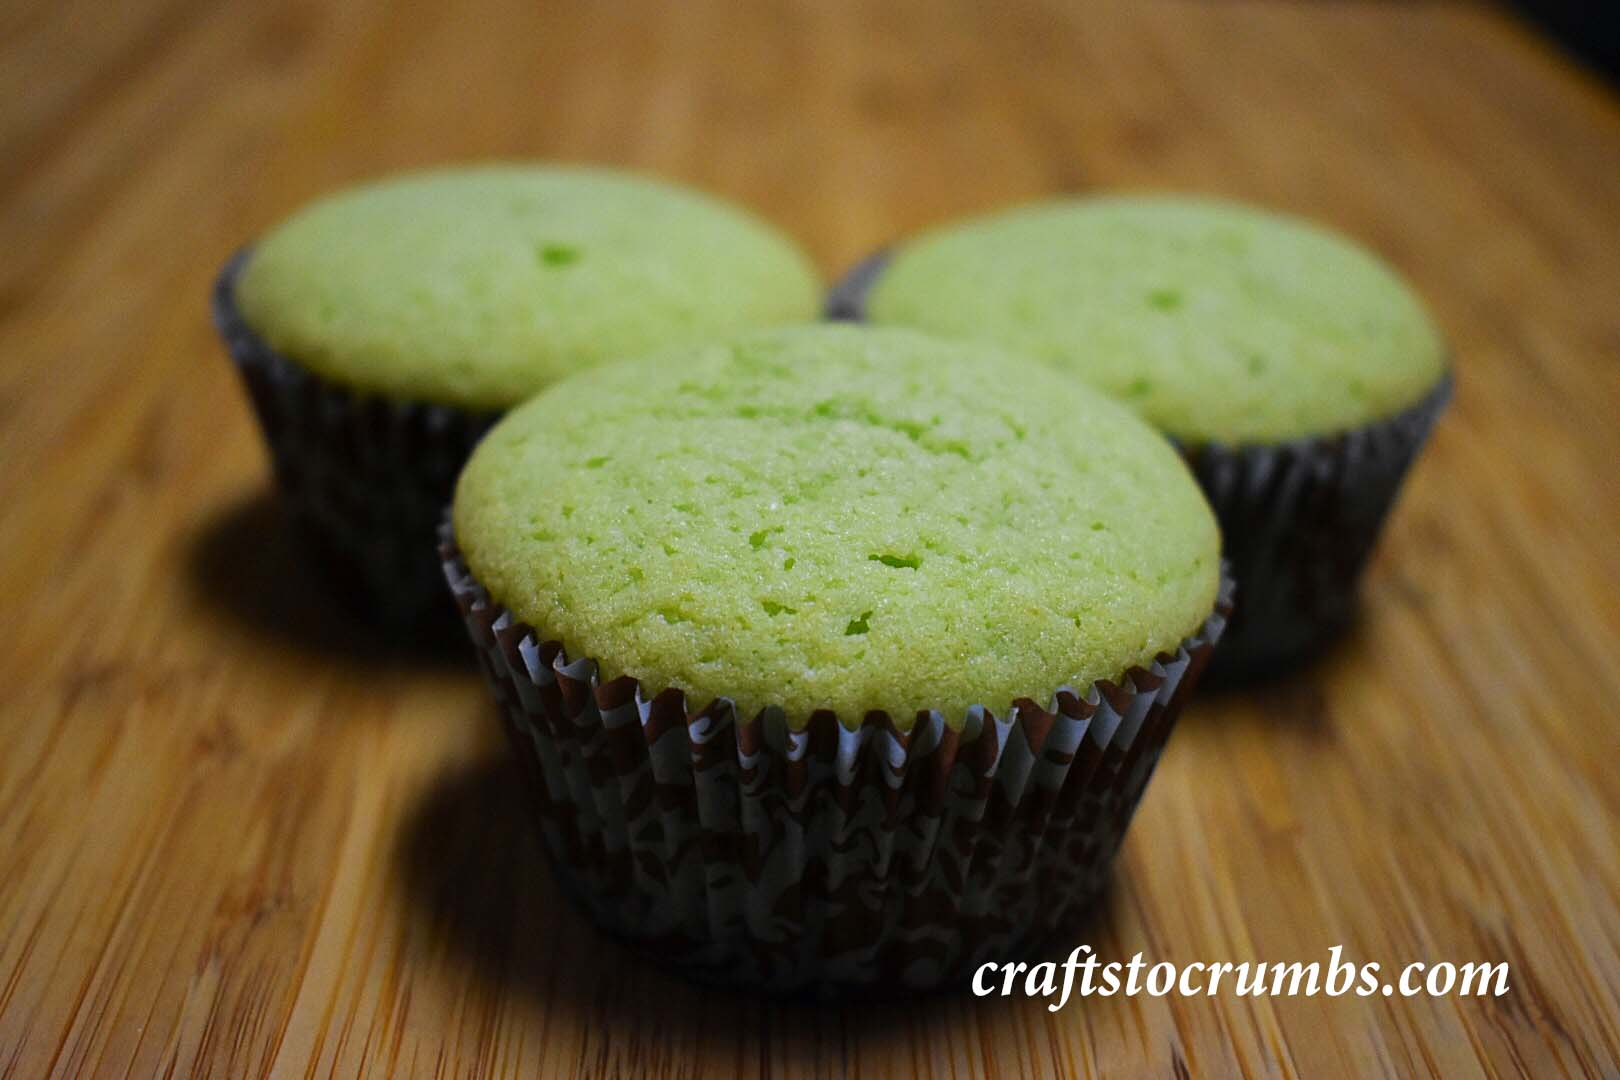 Crafts to Crumbs pandan cupcakes